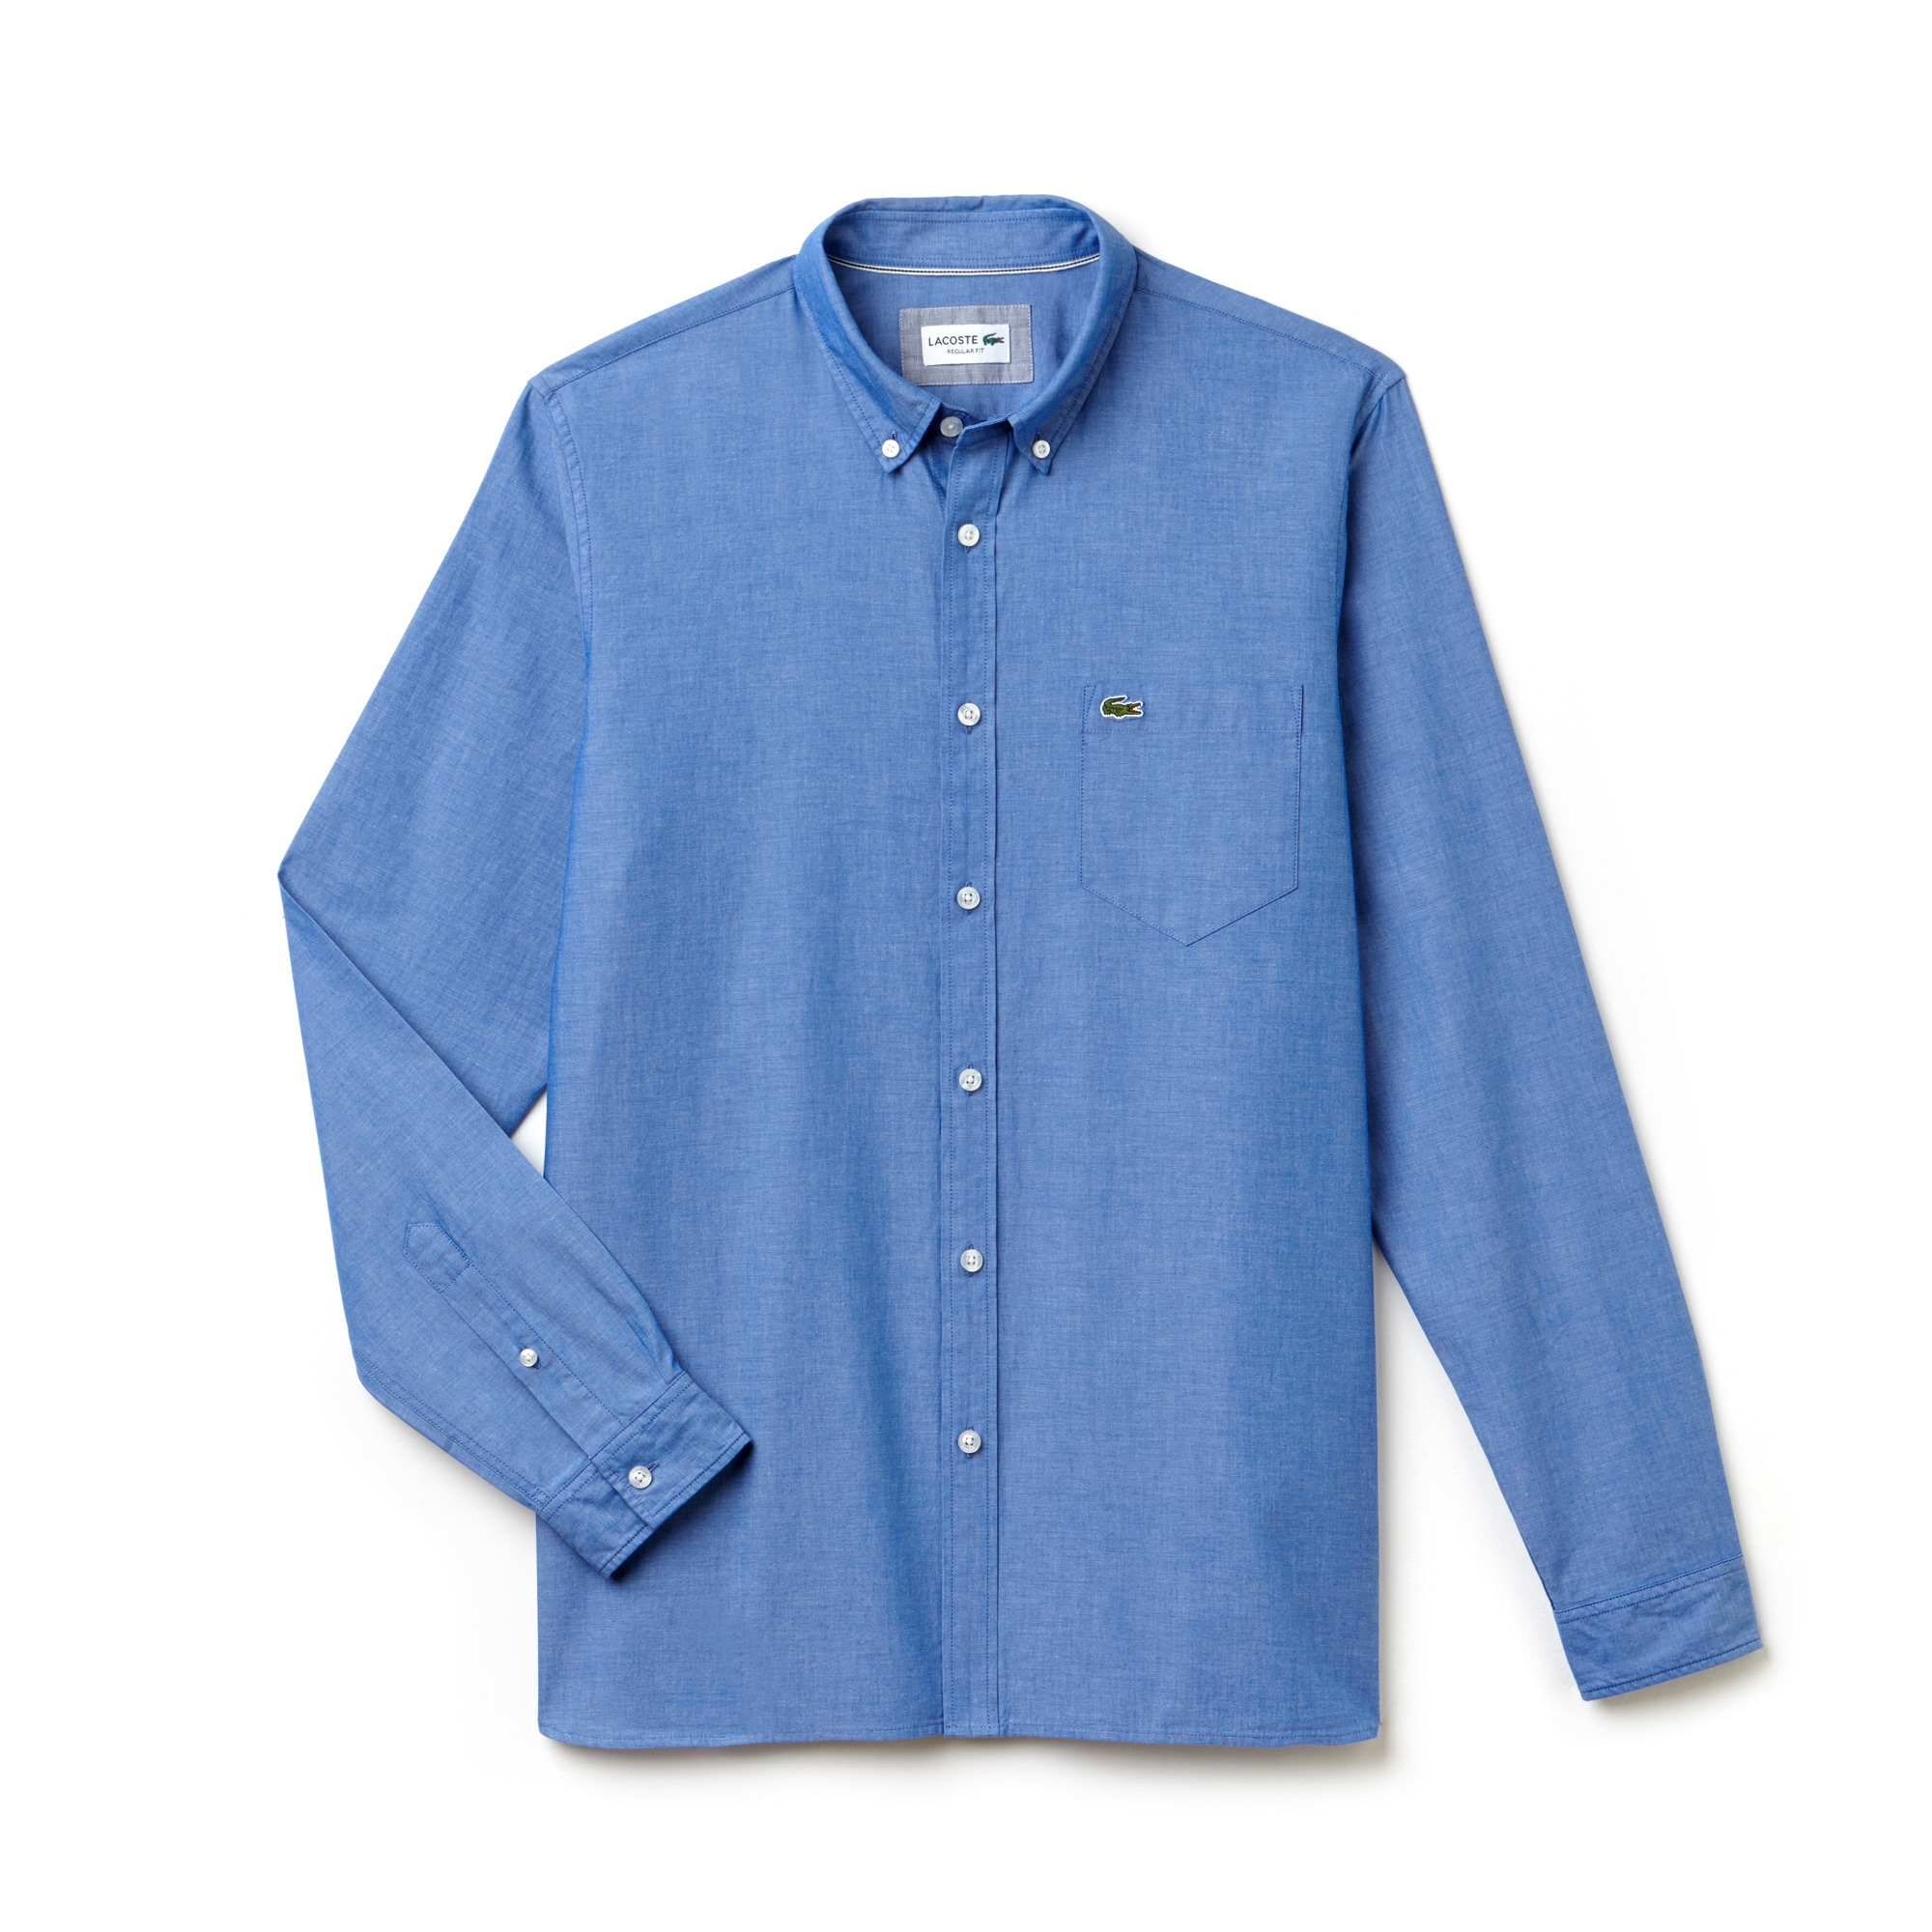 Men's Regular Fit Colored Cotton Chambray Shirt